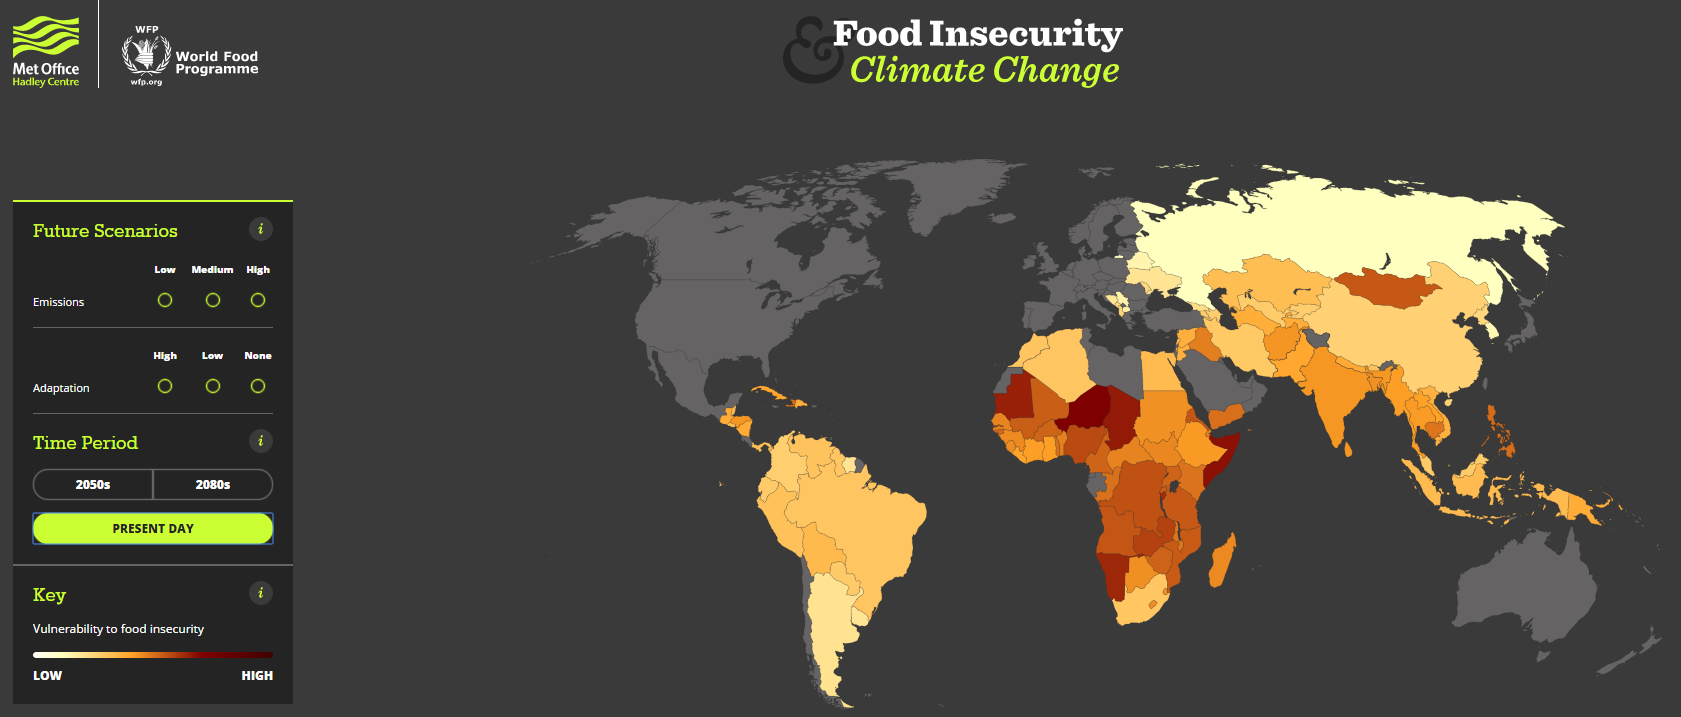 1512B15-food insecurity climate change present day map